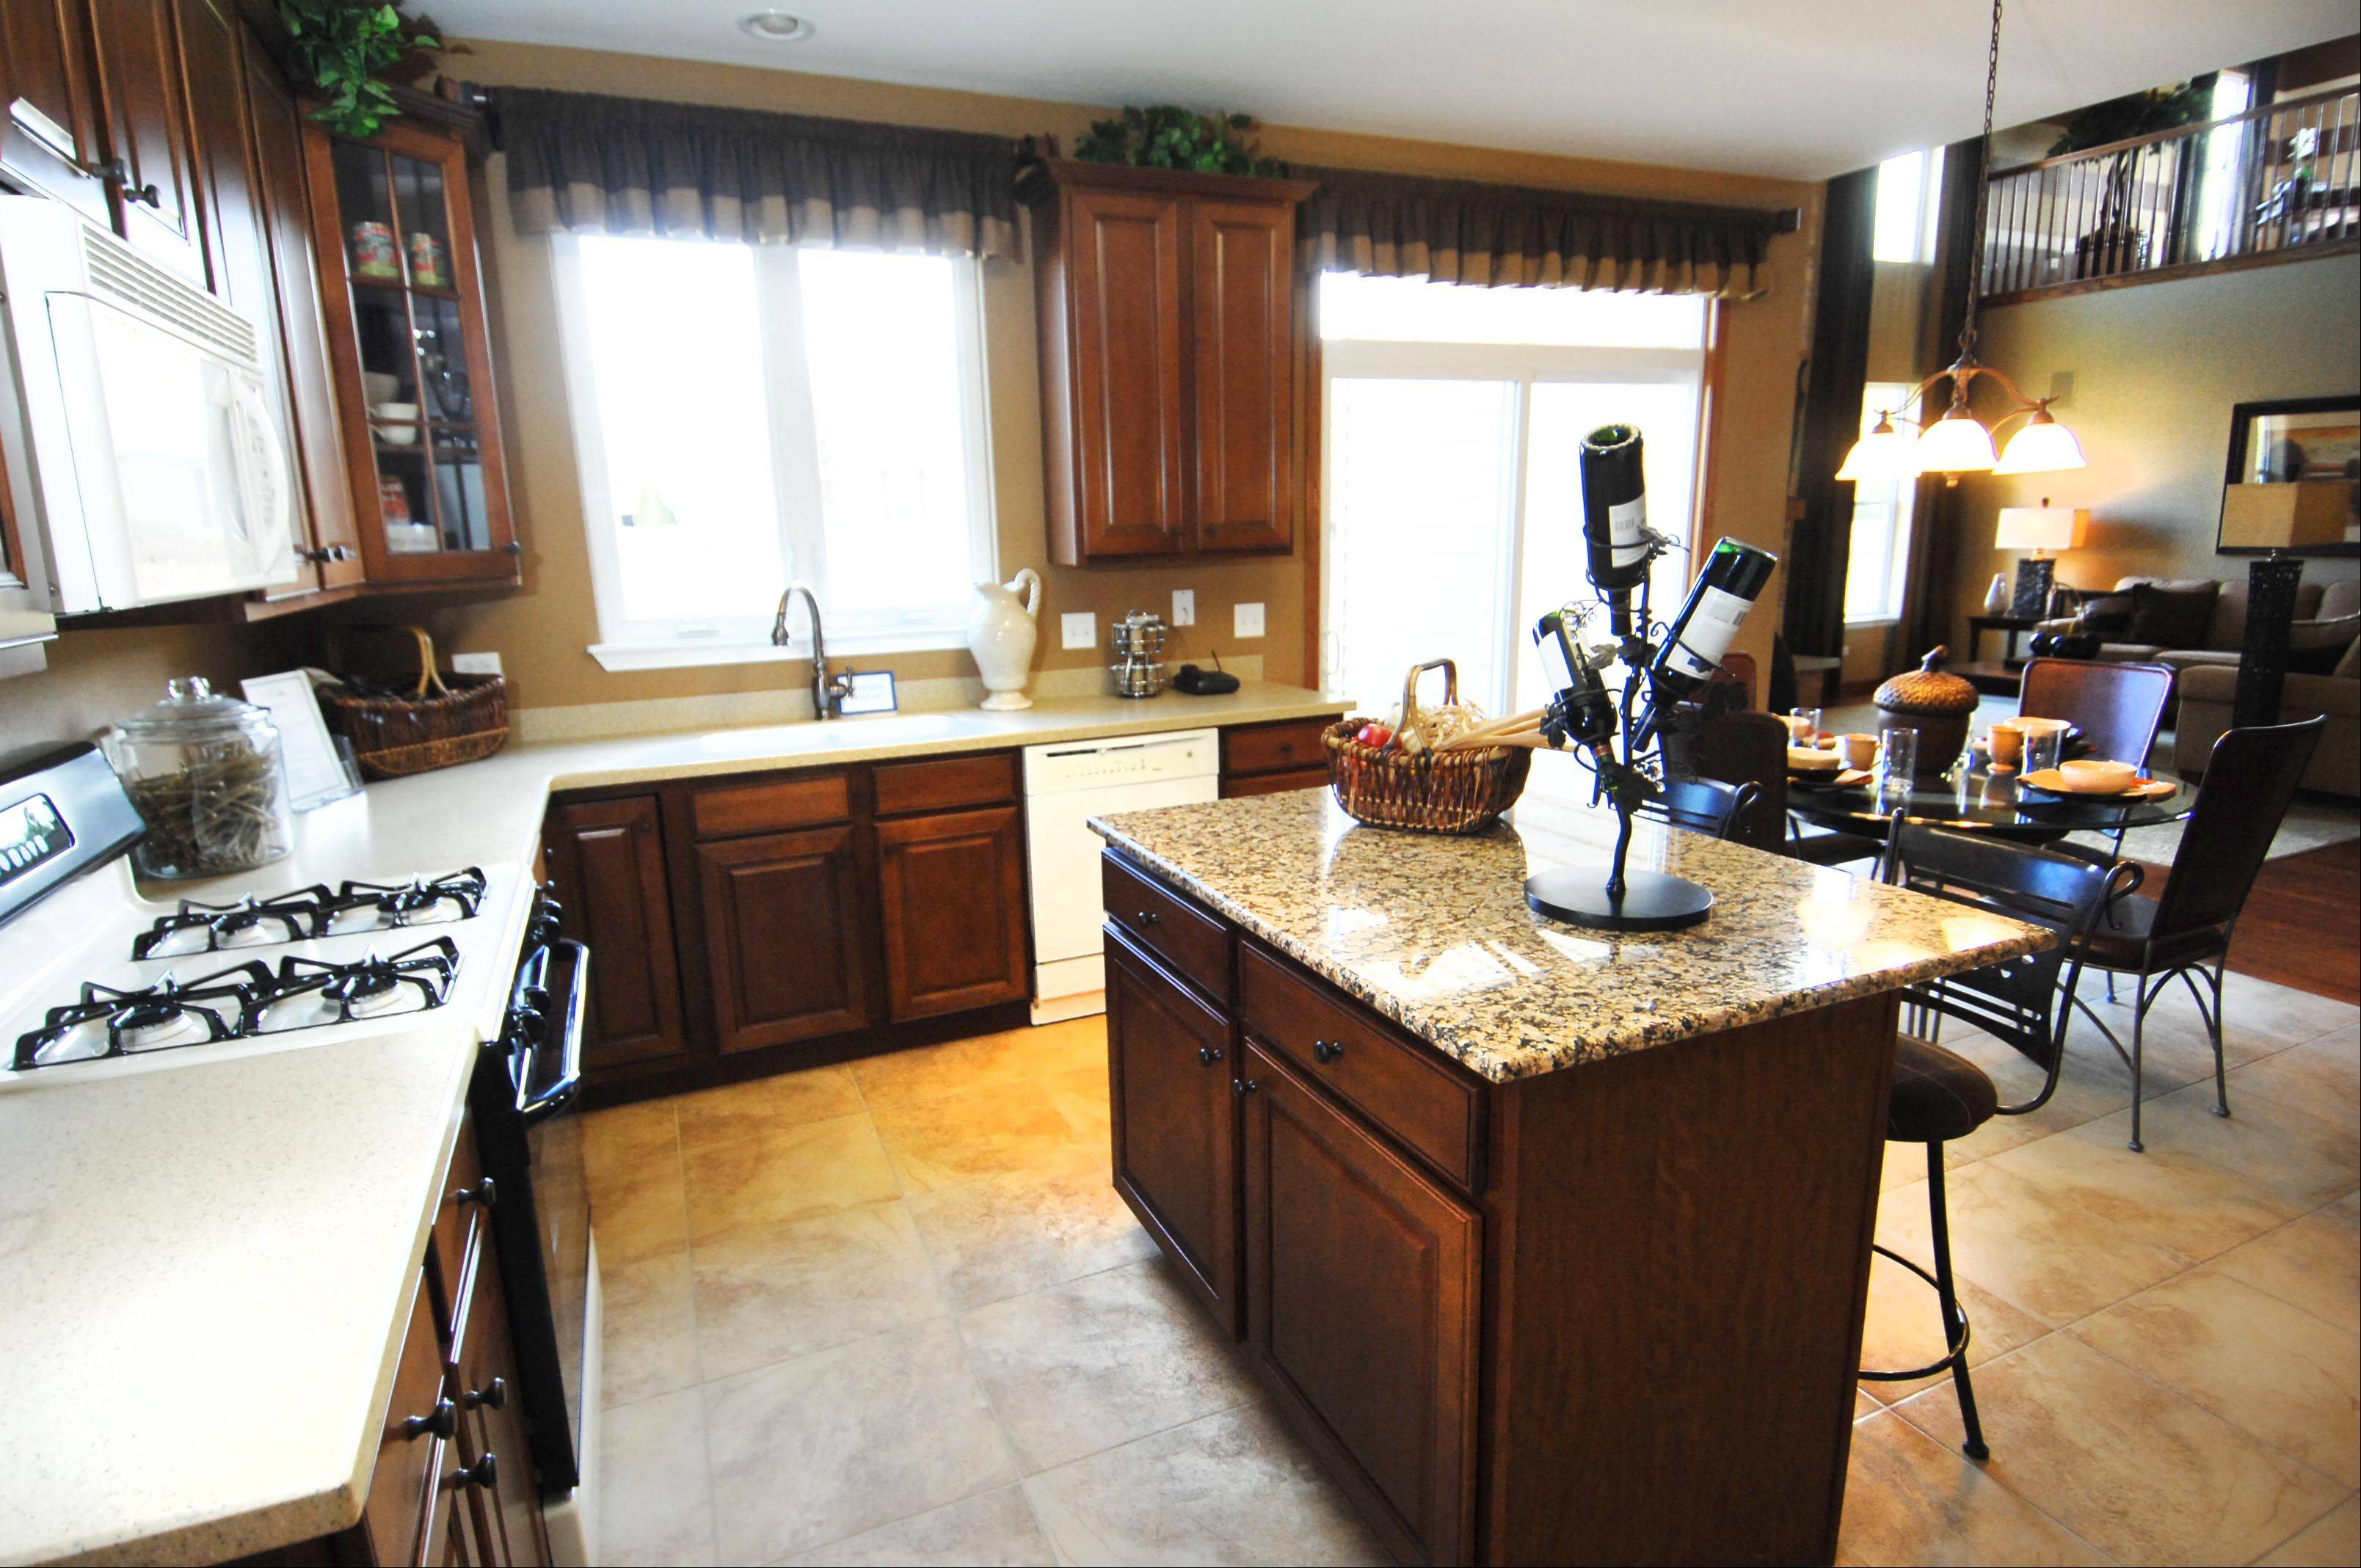 The kitchen of the Madison model in Liberty Trails in McHenry opens to the living space.